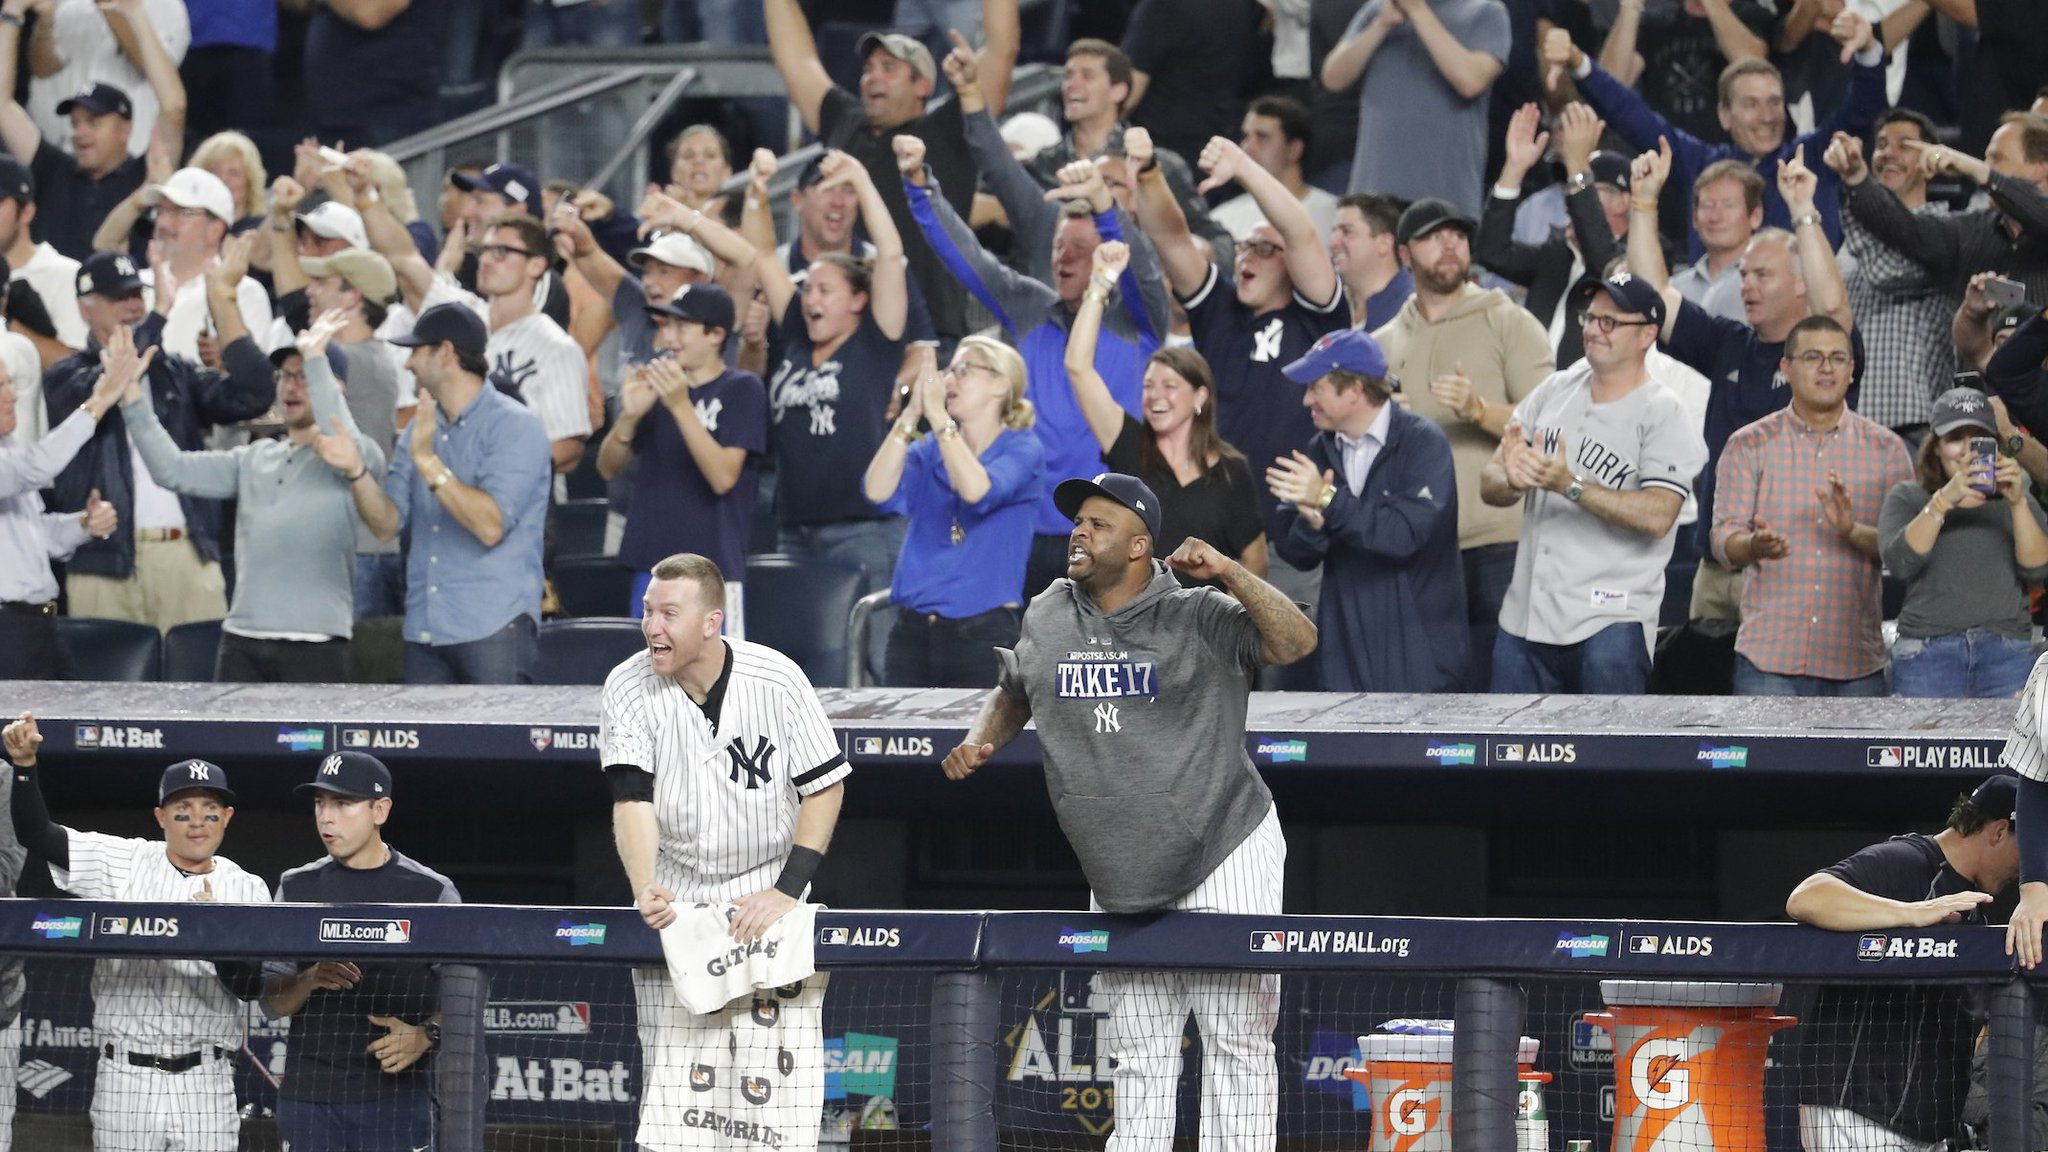 7-3 game heading to the 7th. Keep bringing the energy Yankees fans, we hear you! LET'S GO!  #PinstripePride https://t.co/yCIDgV3kwH